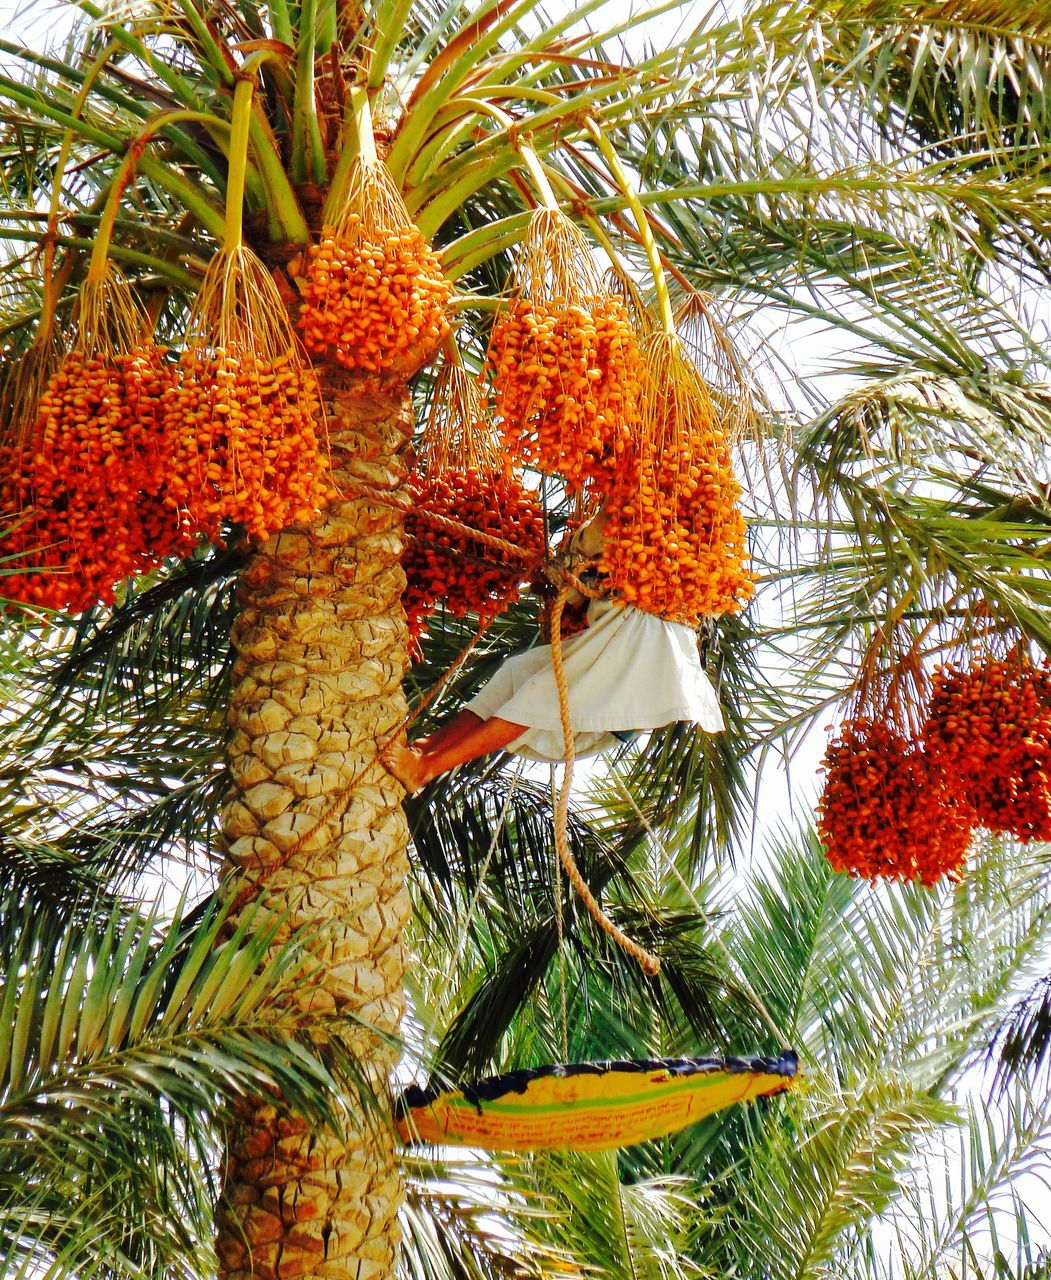 growth, tree, fruit, hanging, no people, food, beauty in nature, nature, food and drink, freshness, palm tree, low angle view, day, healthy eating, flower, outdoors, close-up